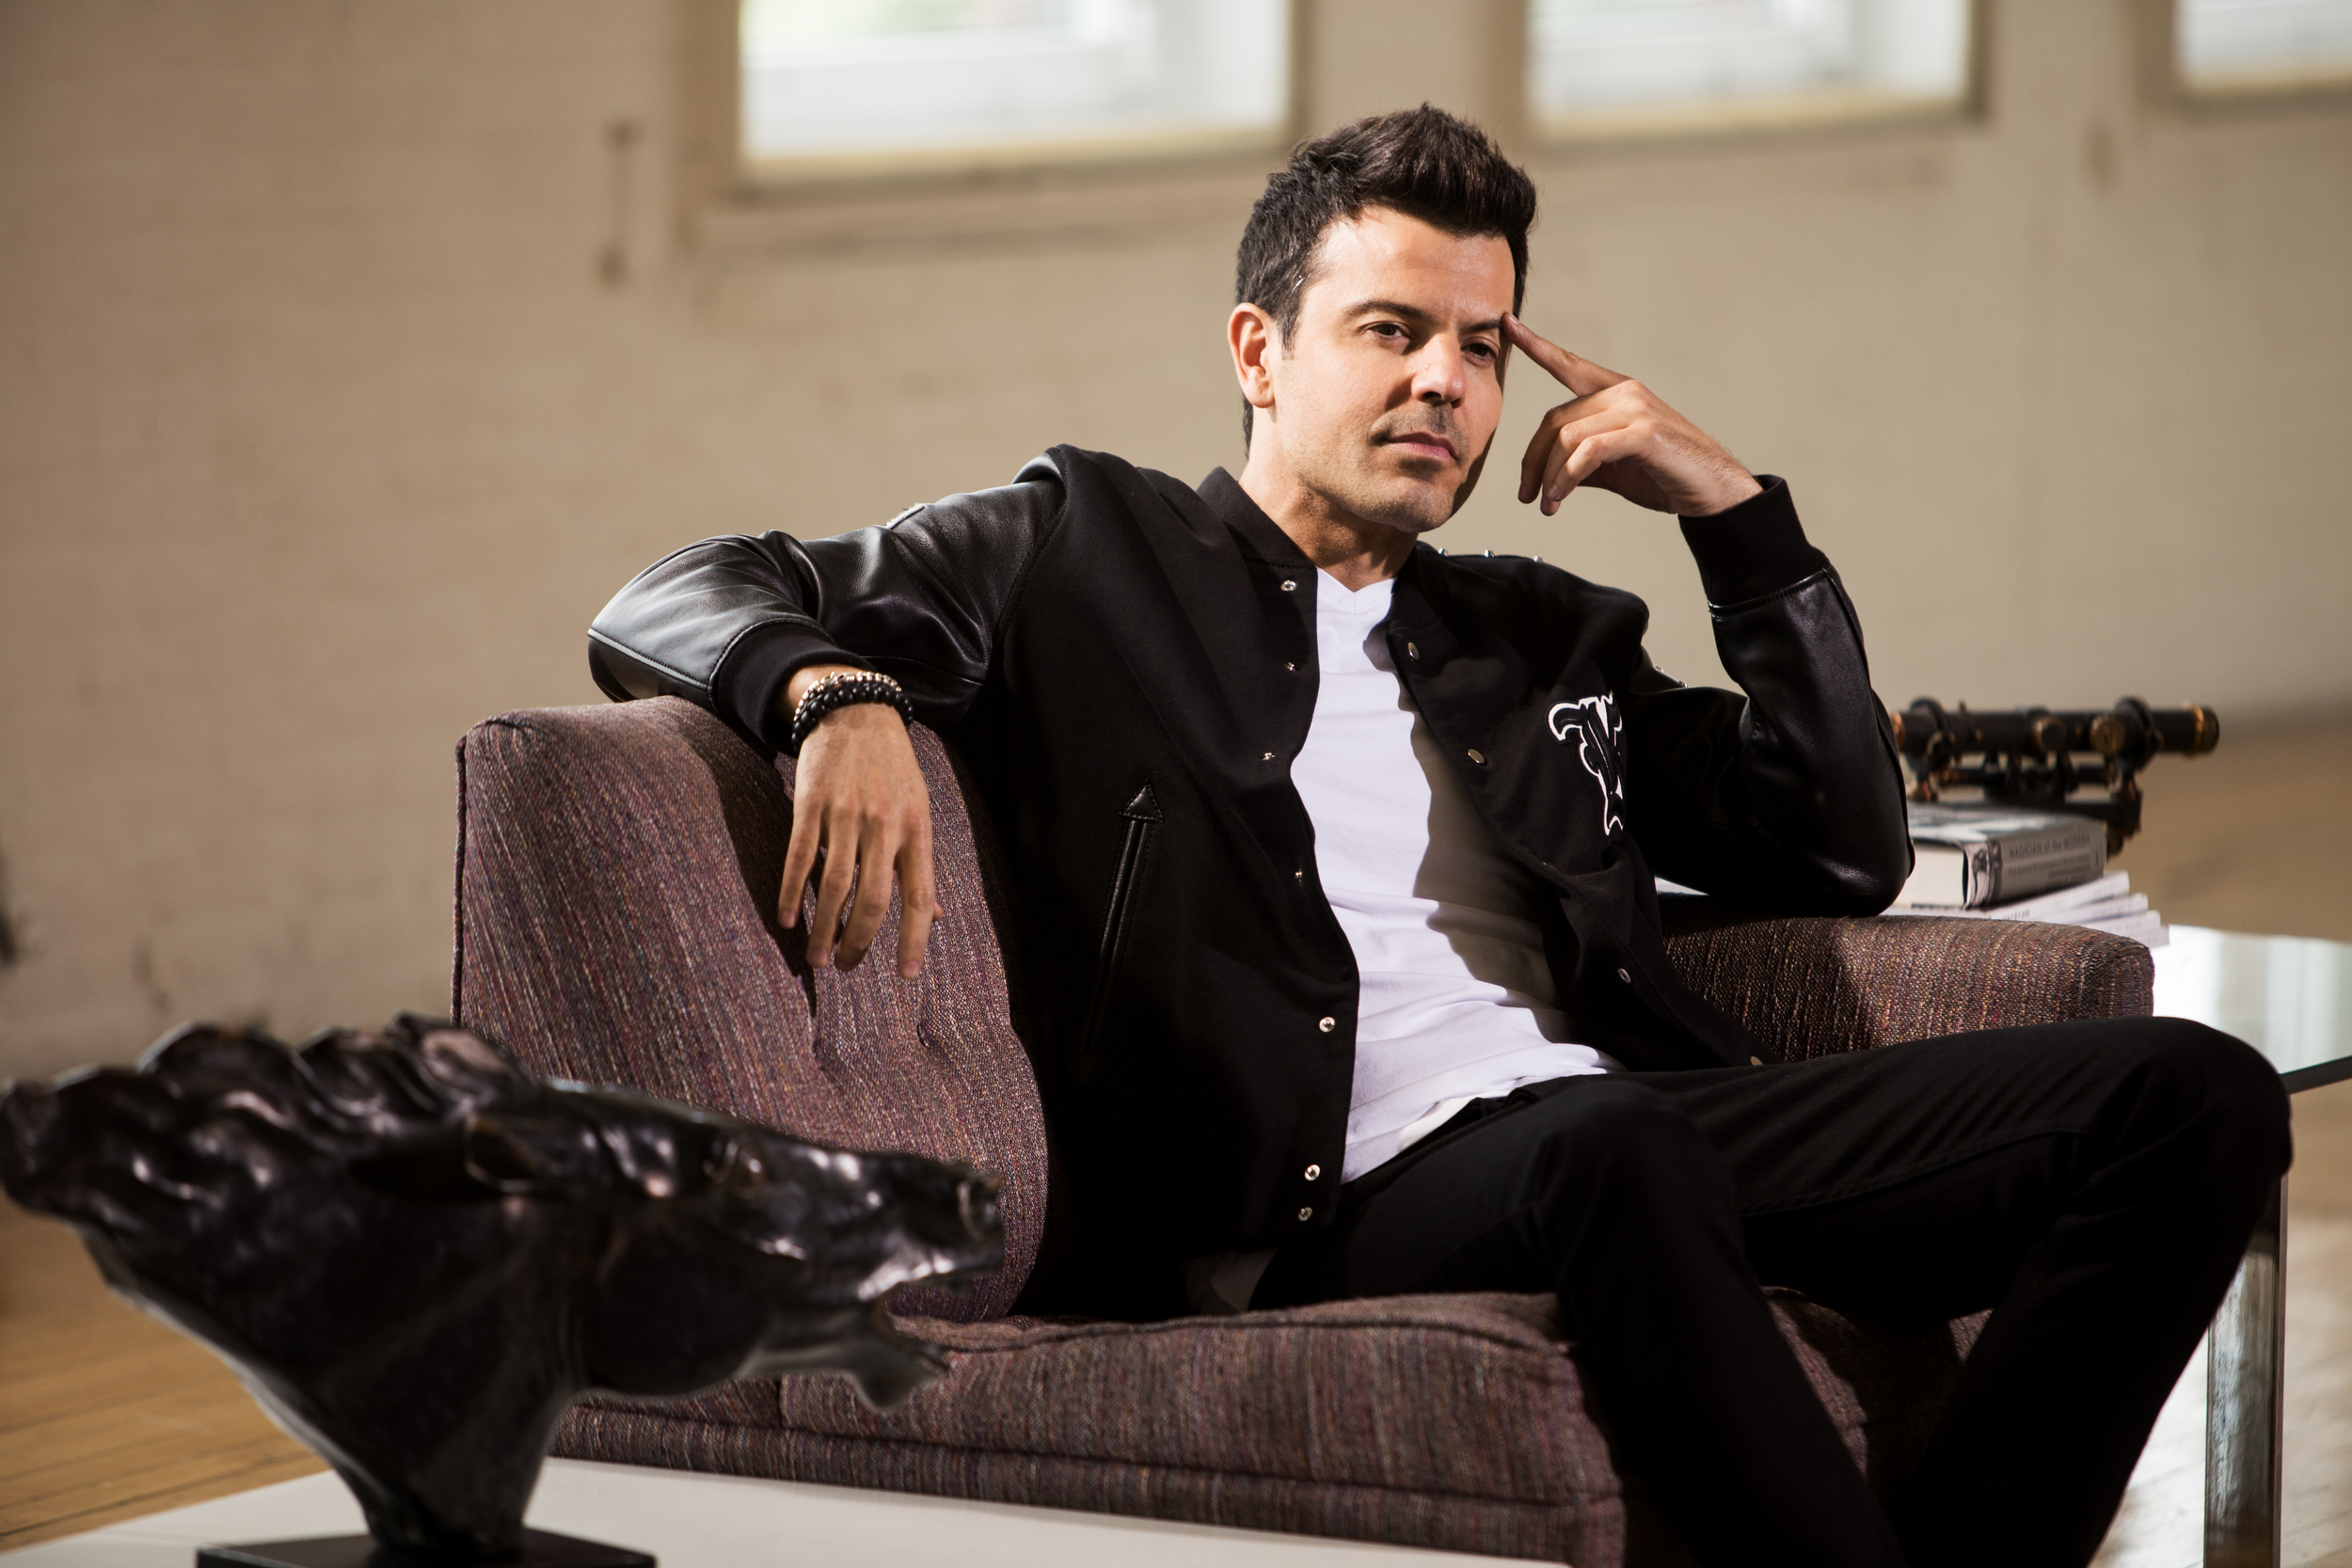 JordanKnight_PhotoByBrianDoherty_MG_6920.jpg